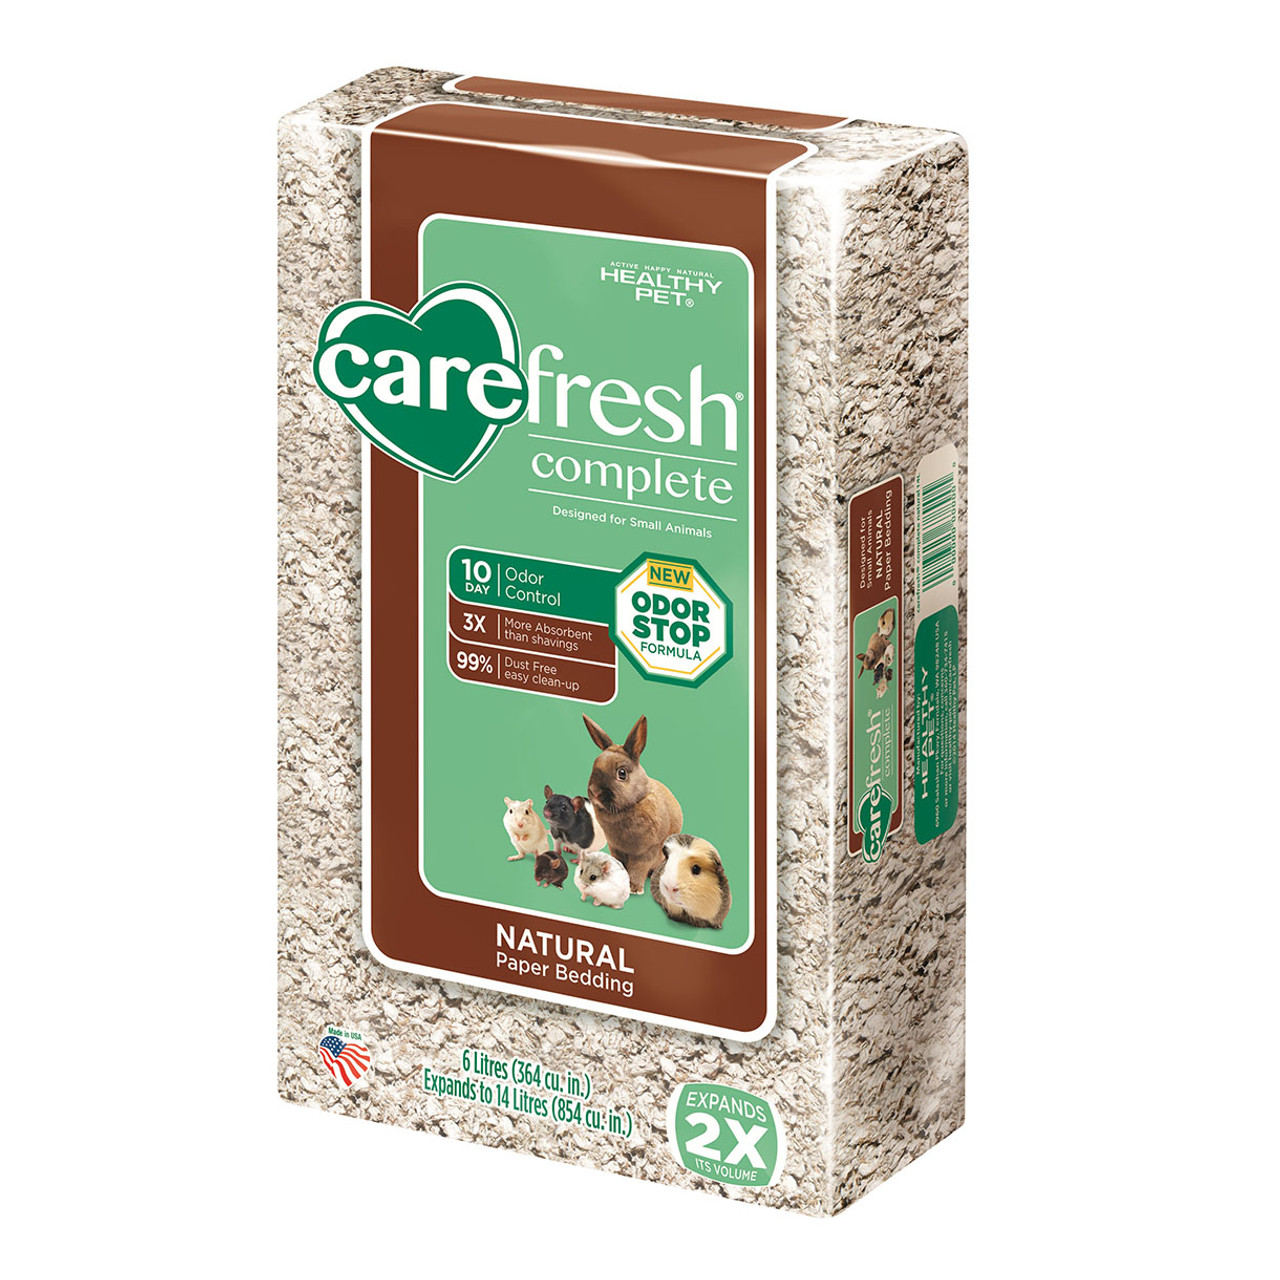 Carefresh Complete Natural Paper Bedding for Small Animals